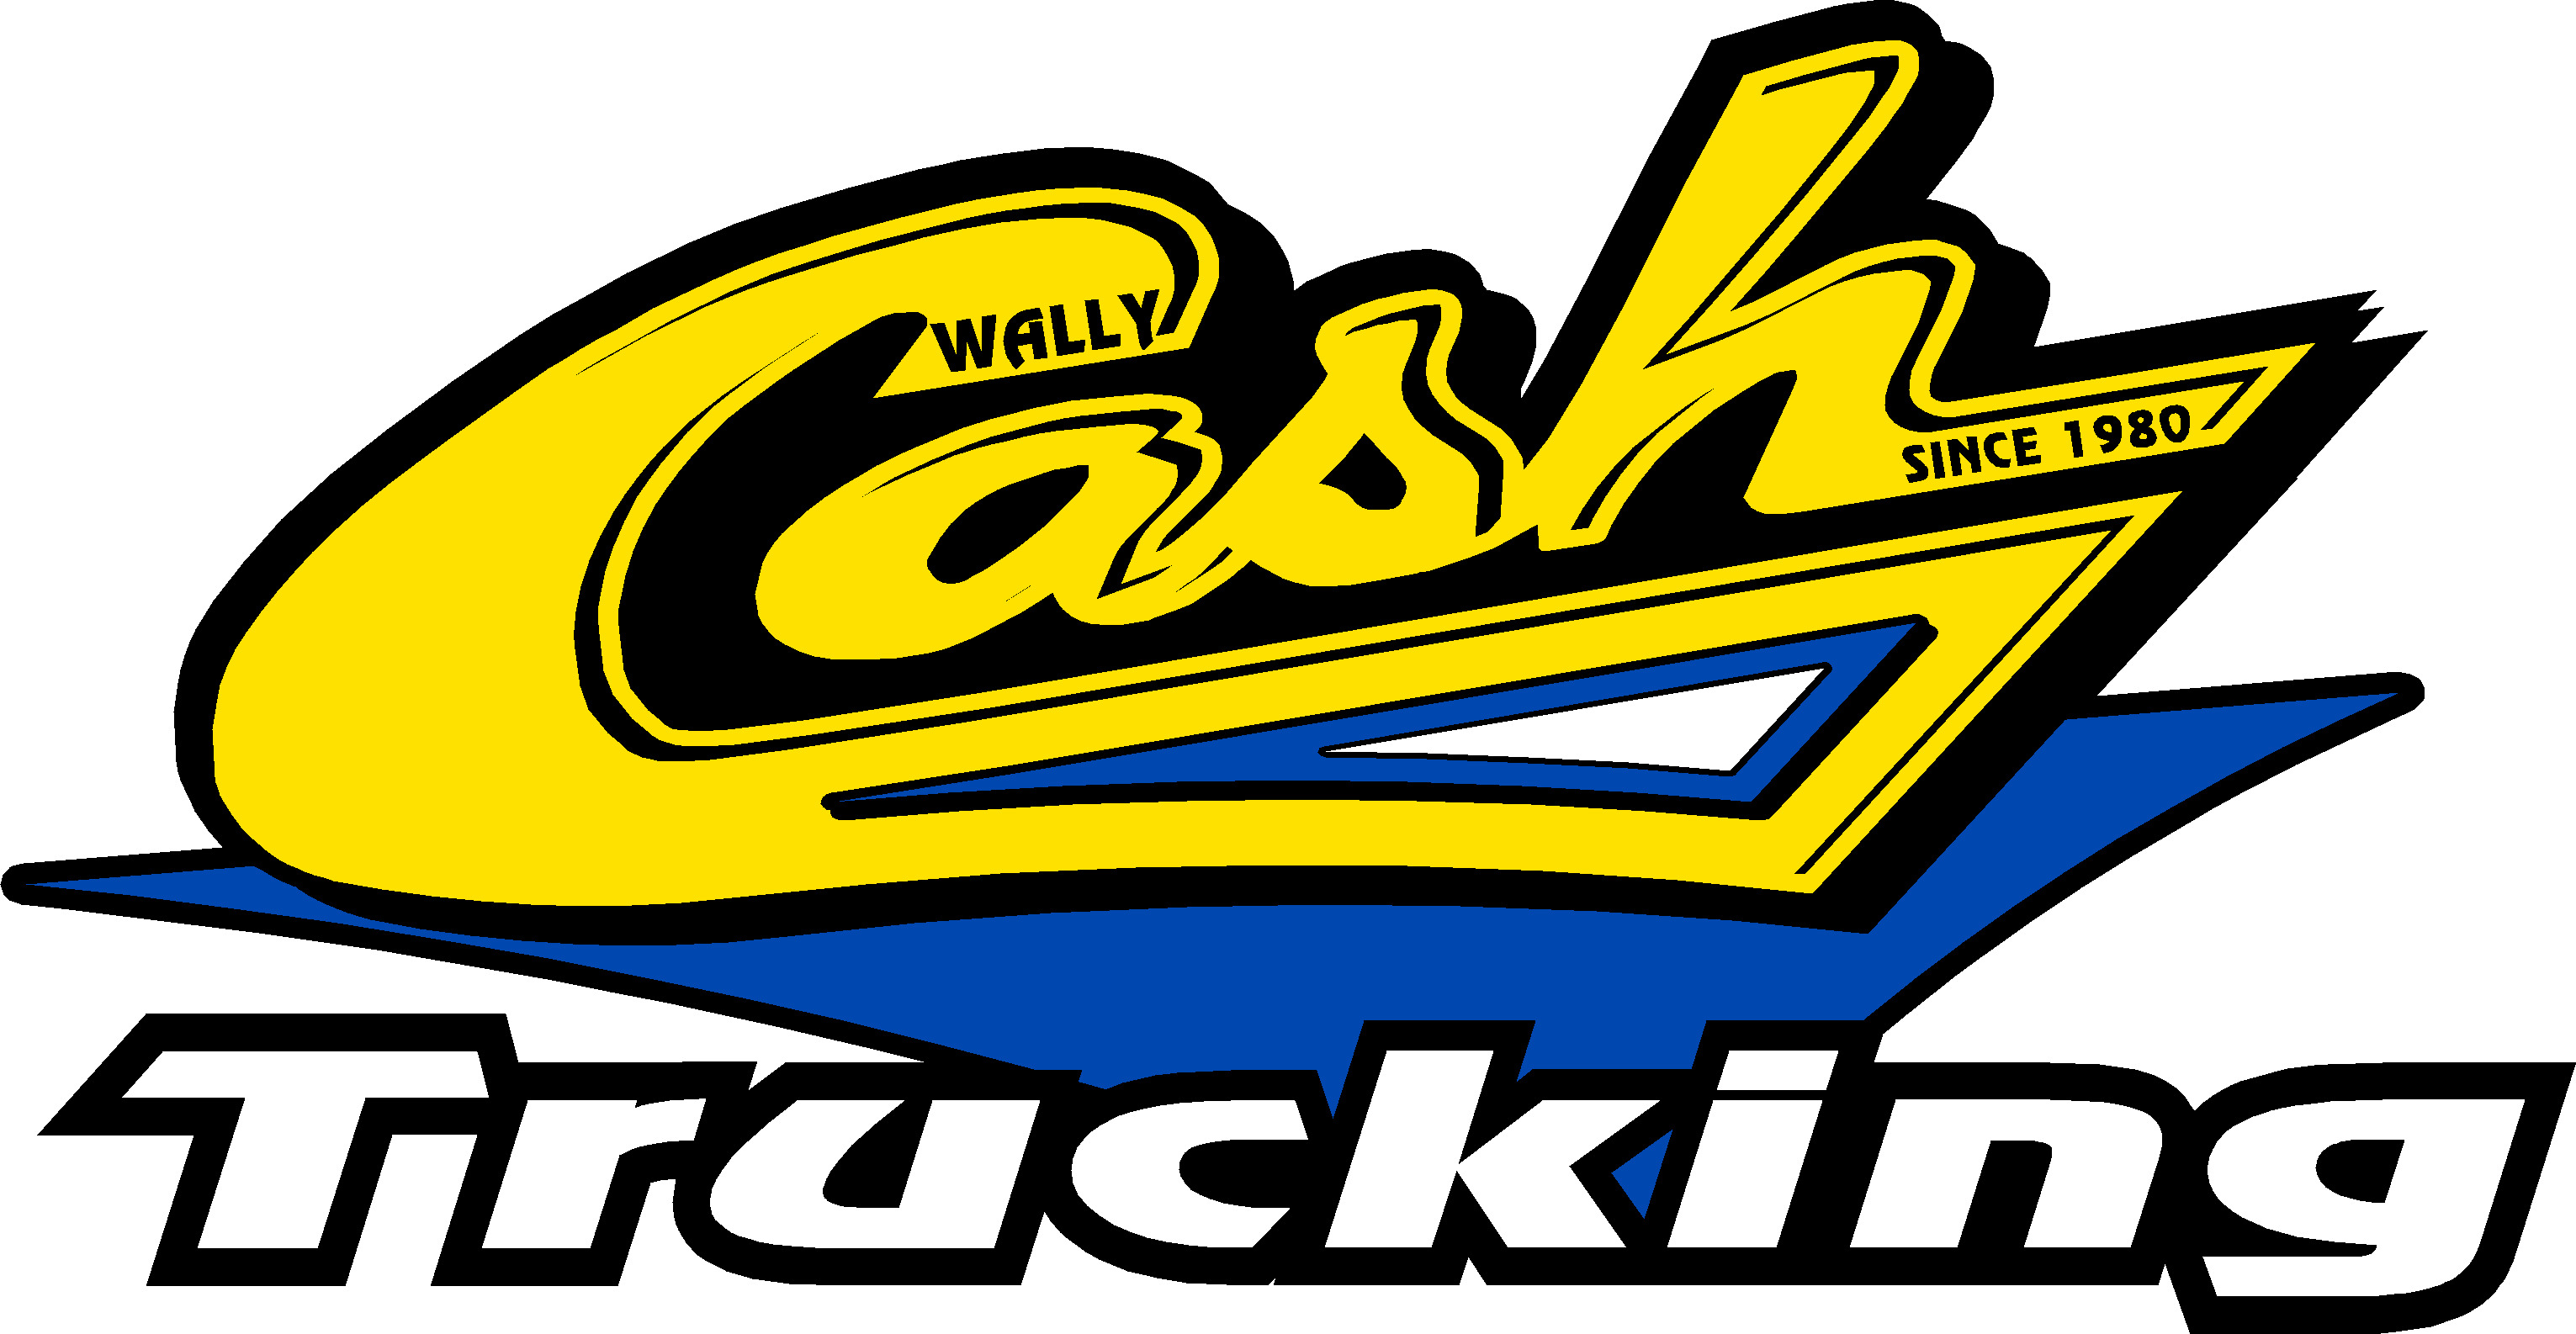 OTR Drivers HOME WEEKLY No Touch Freight - Cleveland, OH - Wally Cash Trucking, Inc.